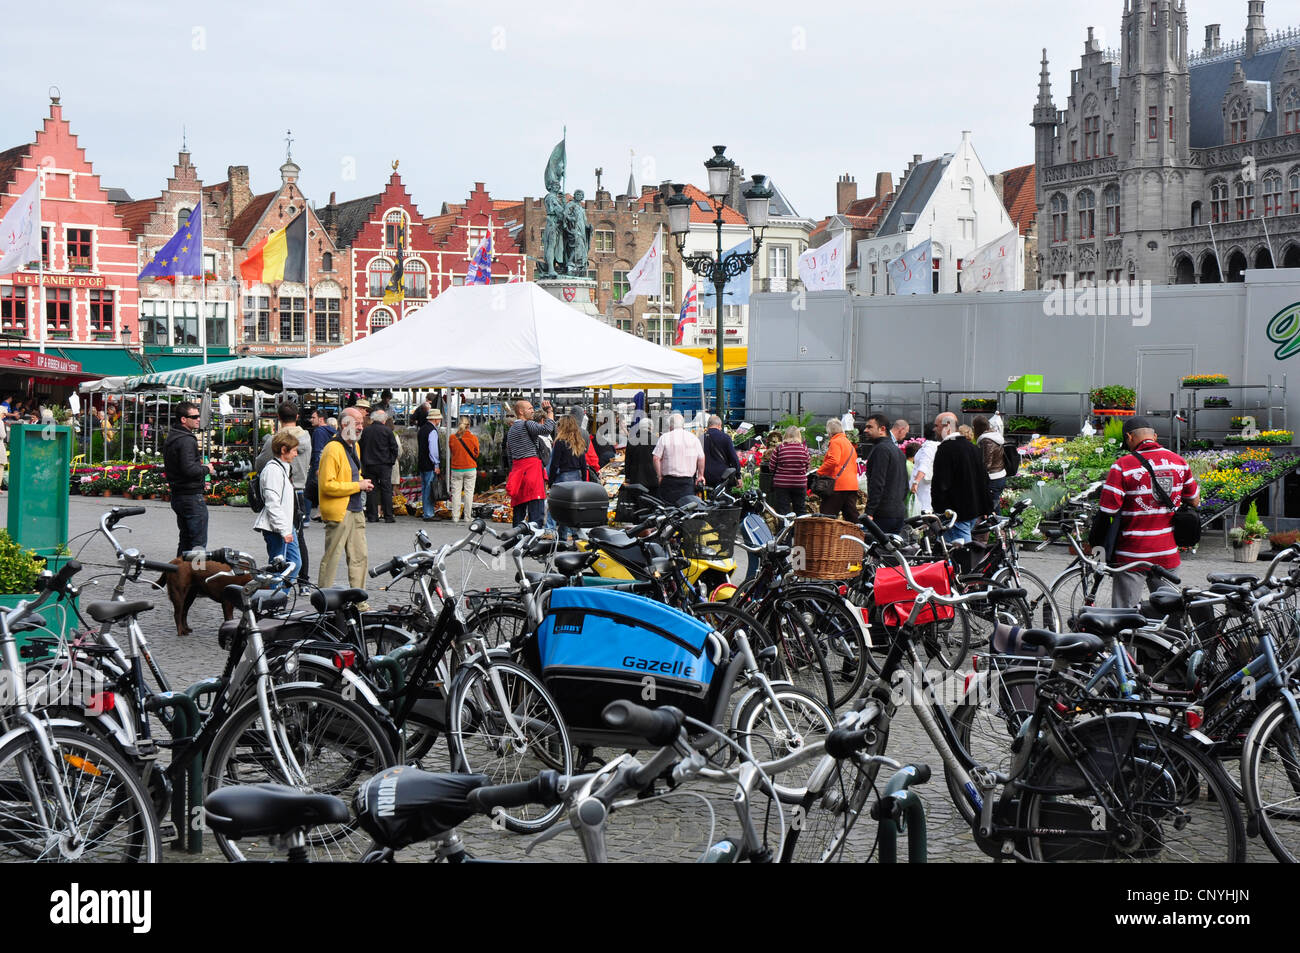 Belgium - Bruges - the Market Square - cycles - the most popular transport in the city - Stock Image